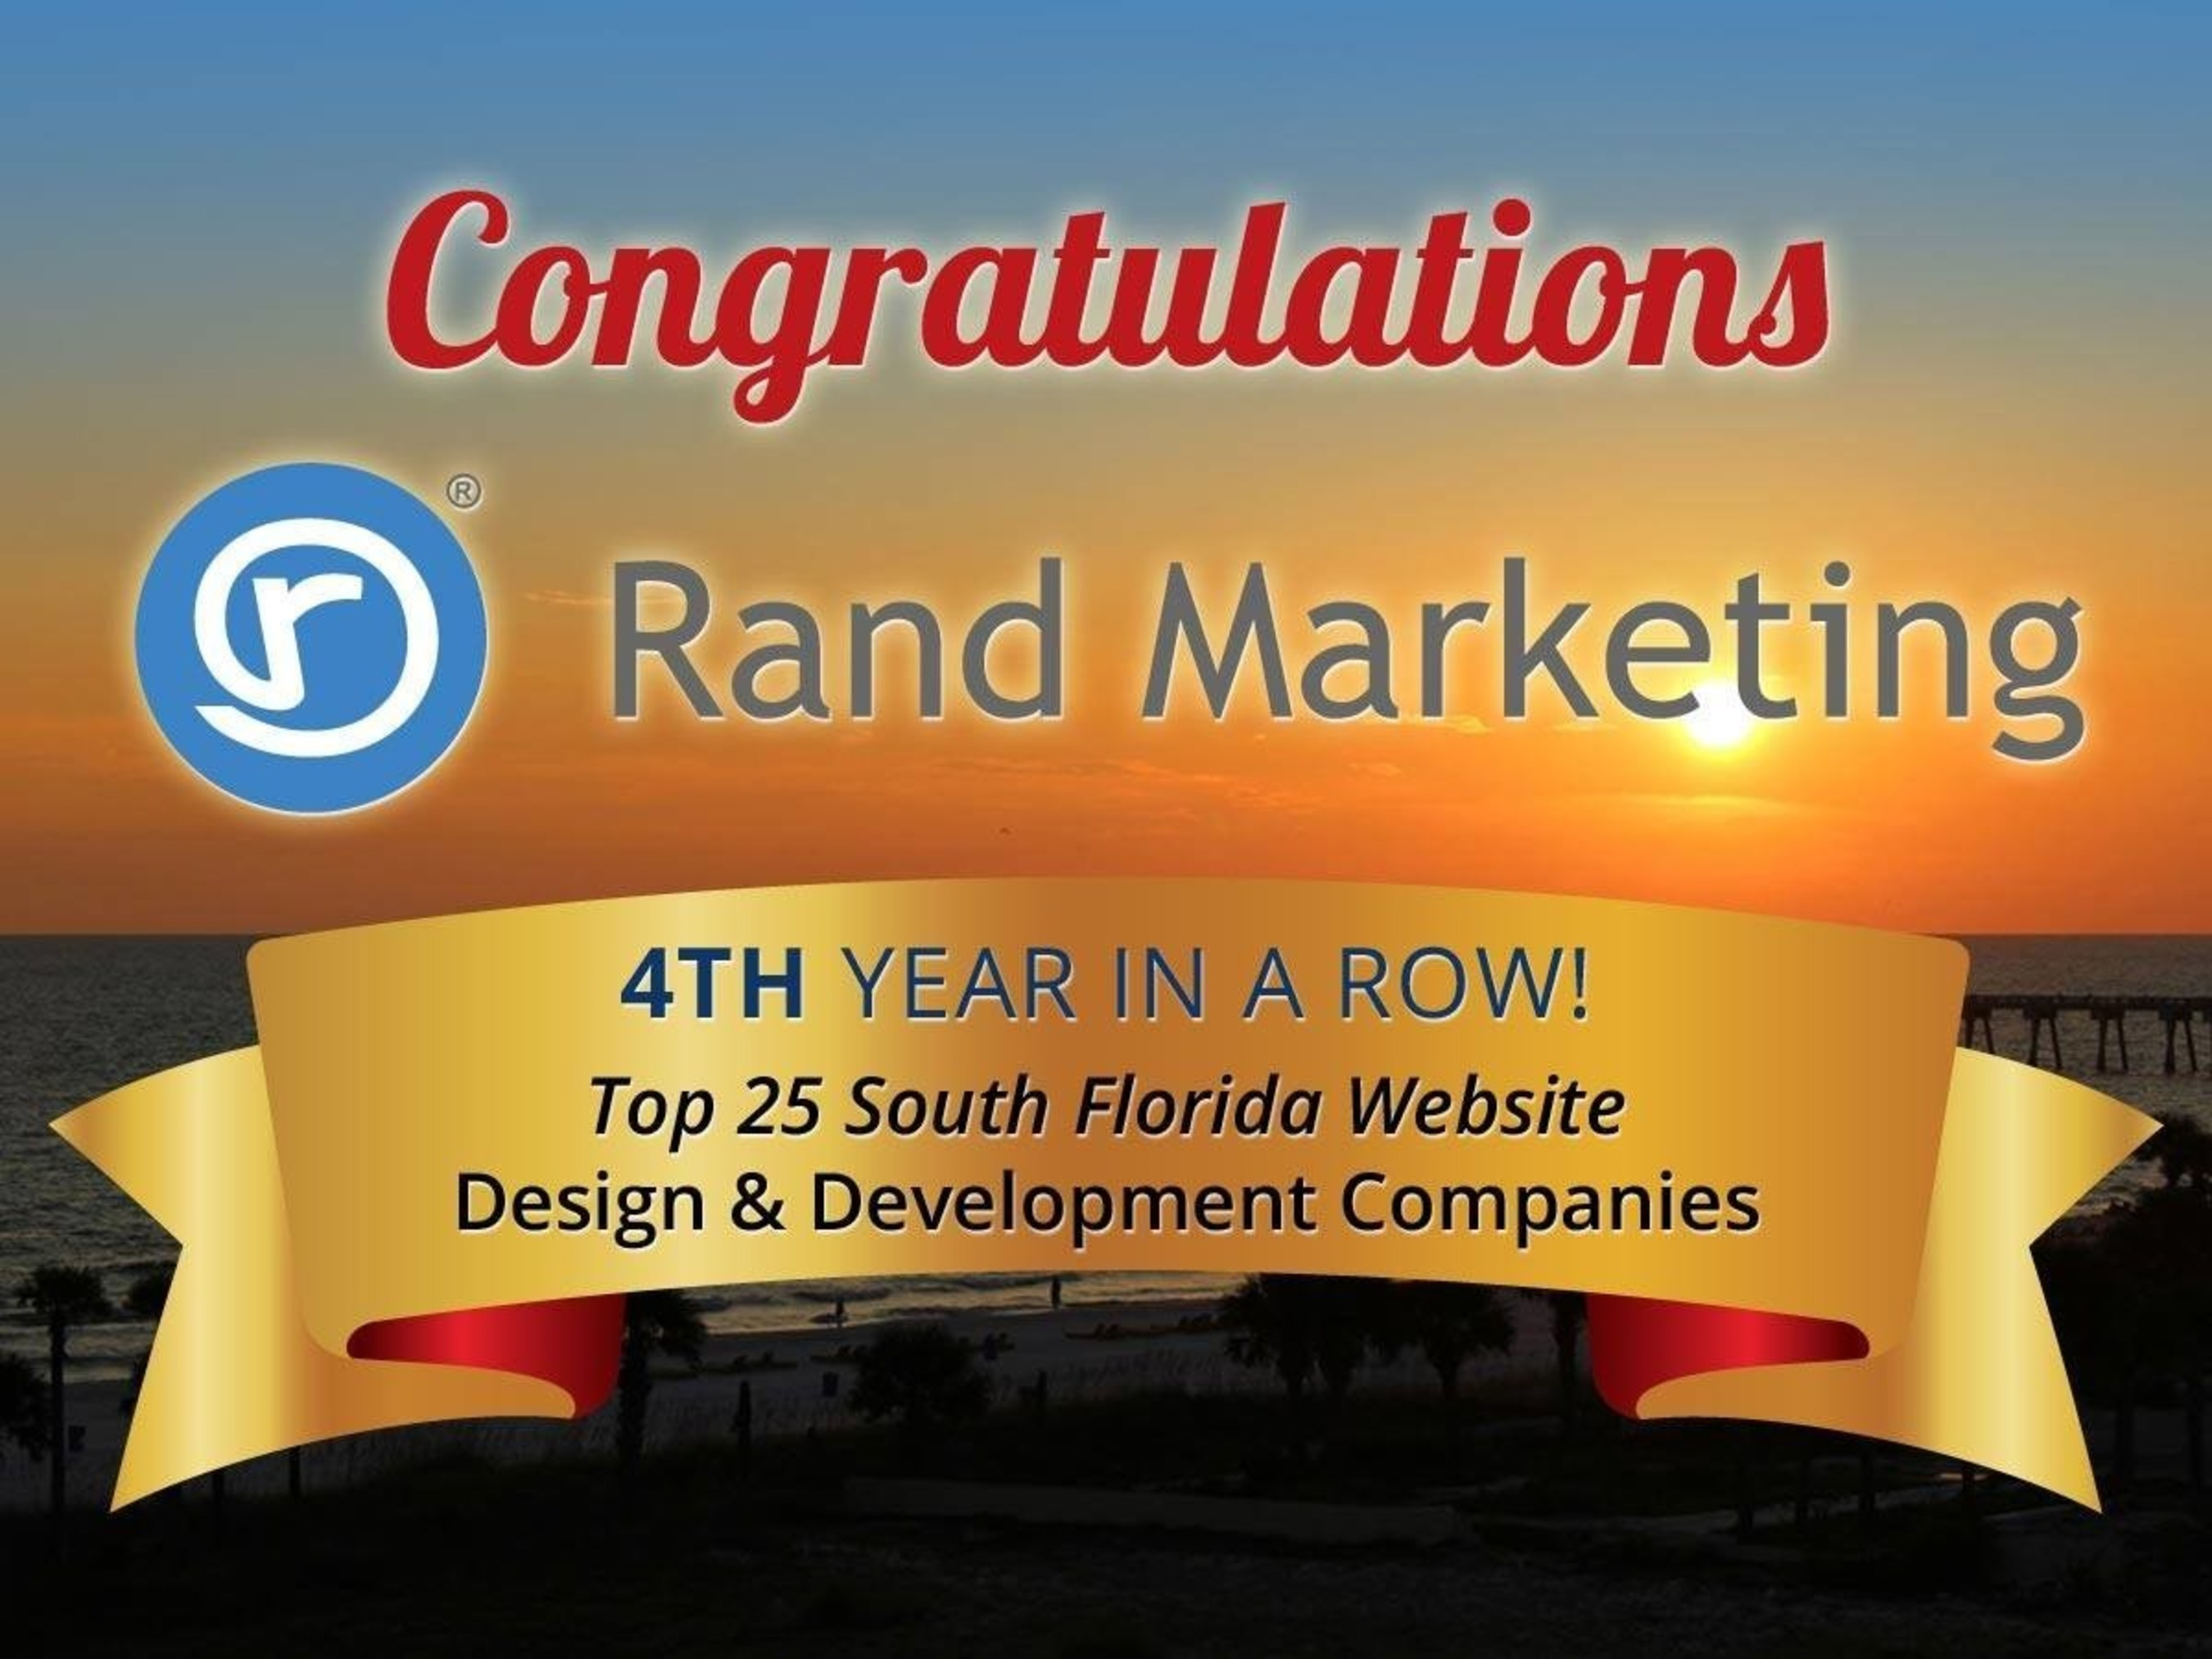 Rand Internet Marketing Named to the Top 10 for Website Design and Development Companies in South